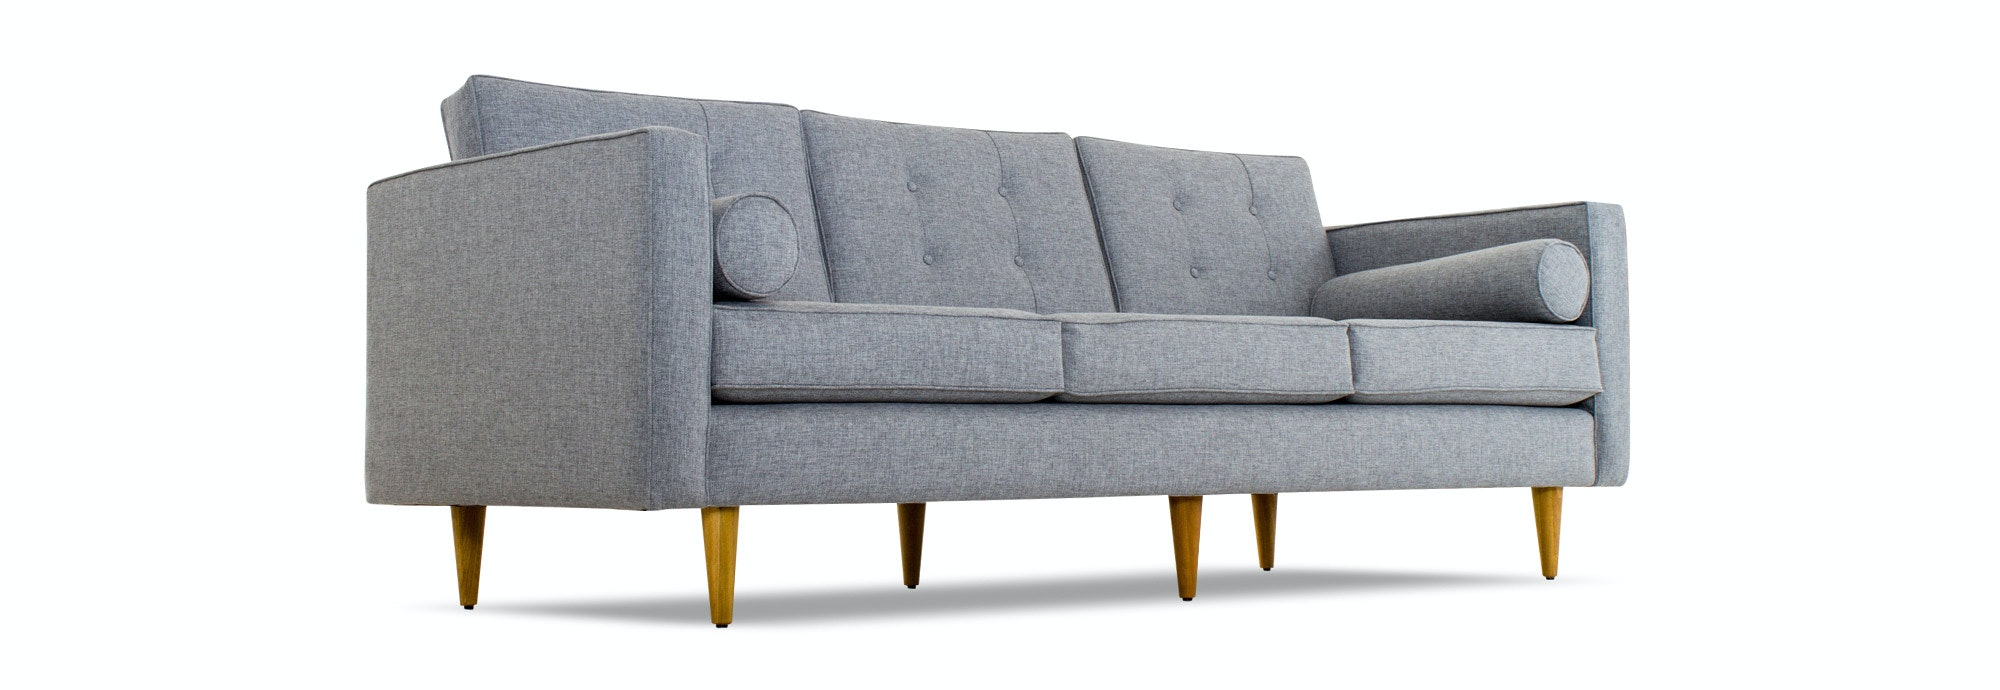 # Braxton Reclining Sectional By Catnapper.